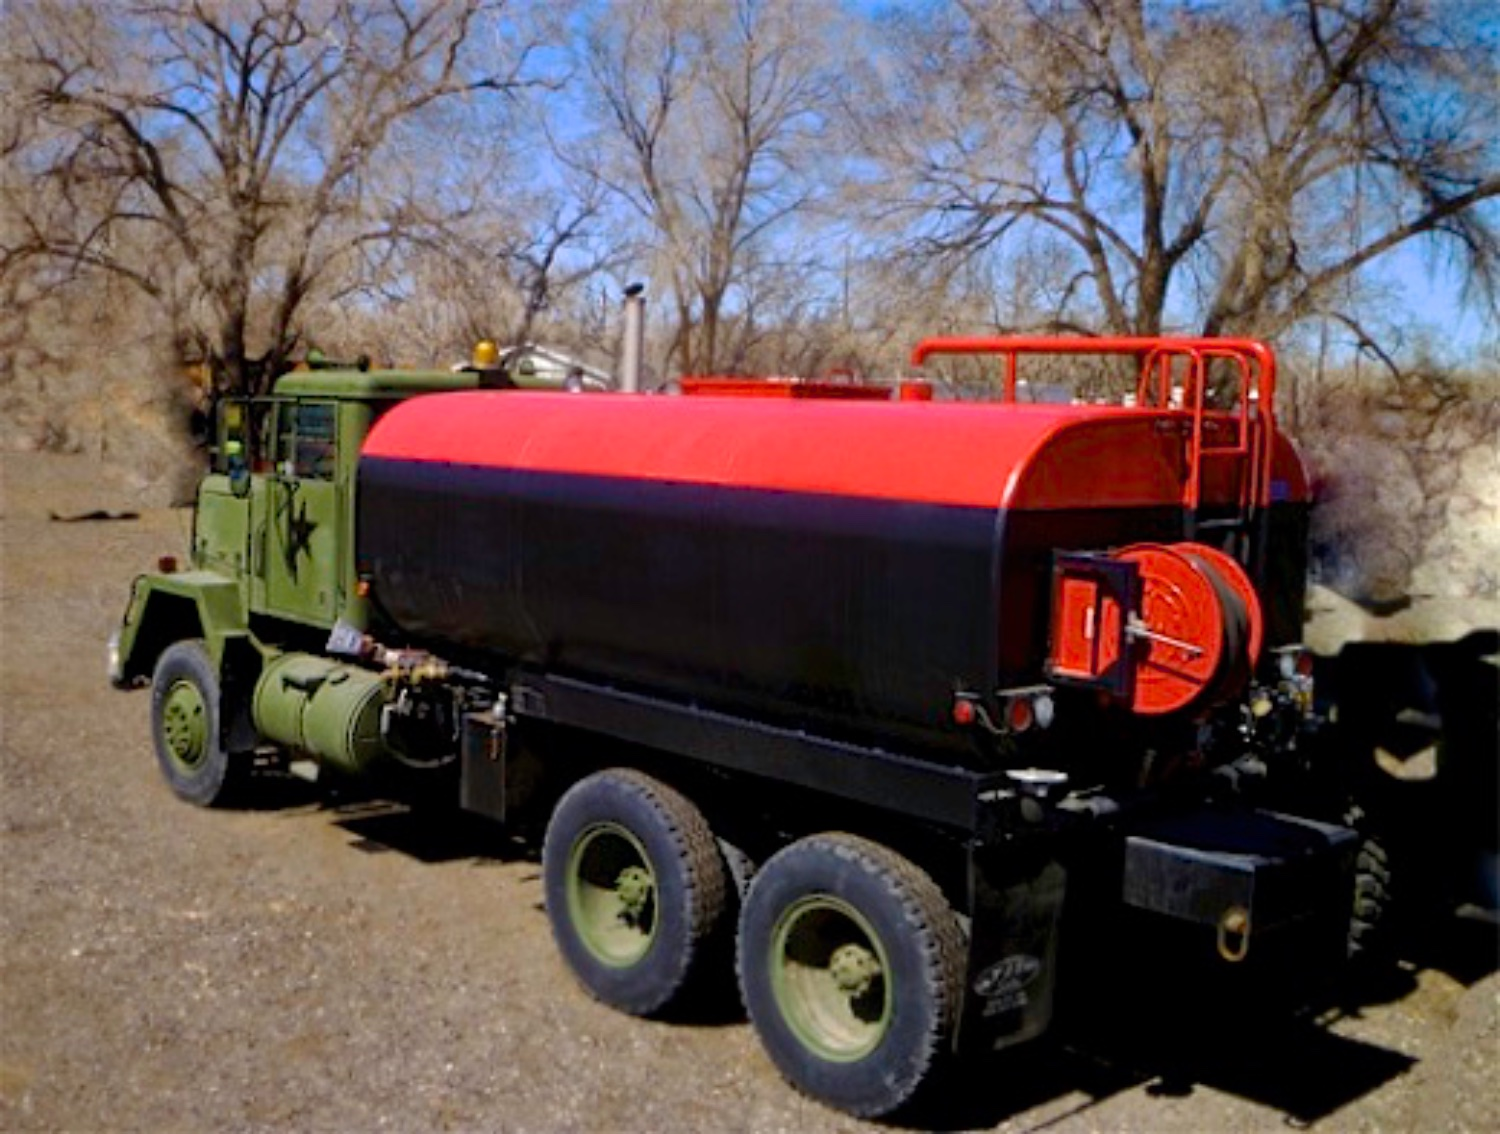 WaterTruck 6383.jpg